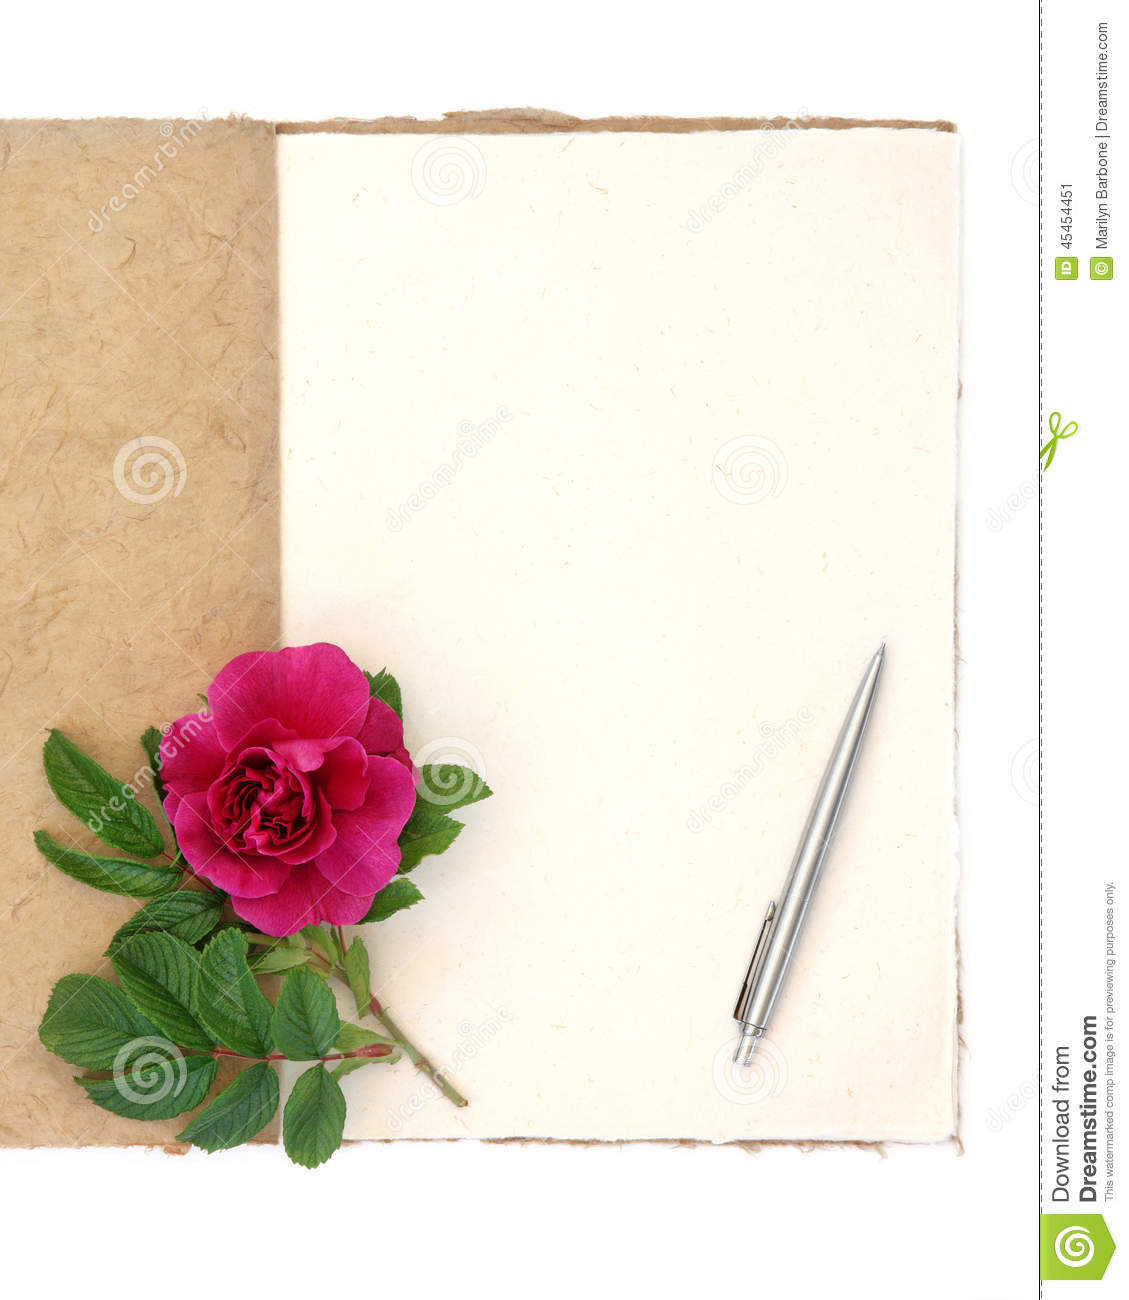 Love letter stock image image of hemp retro floral 45454451 love letter altavistaventures Images